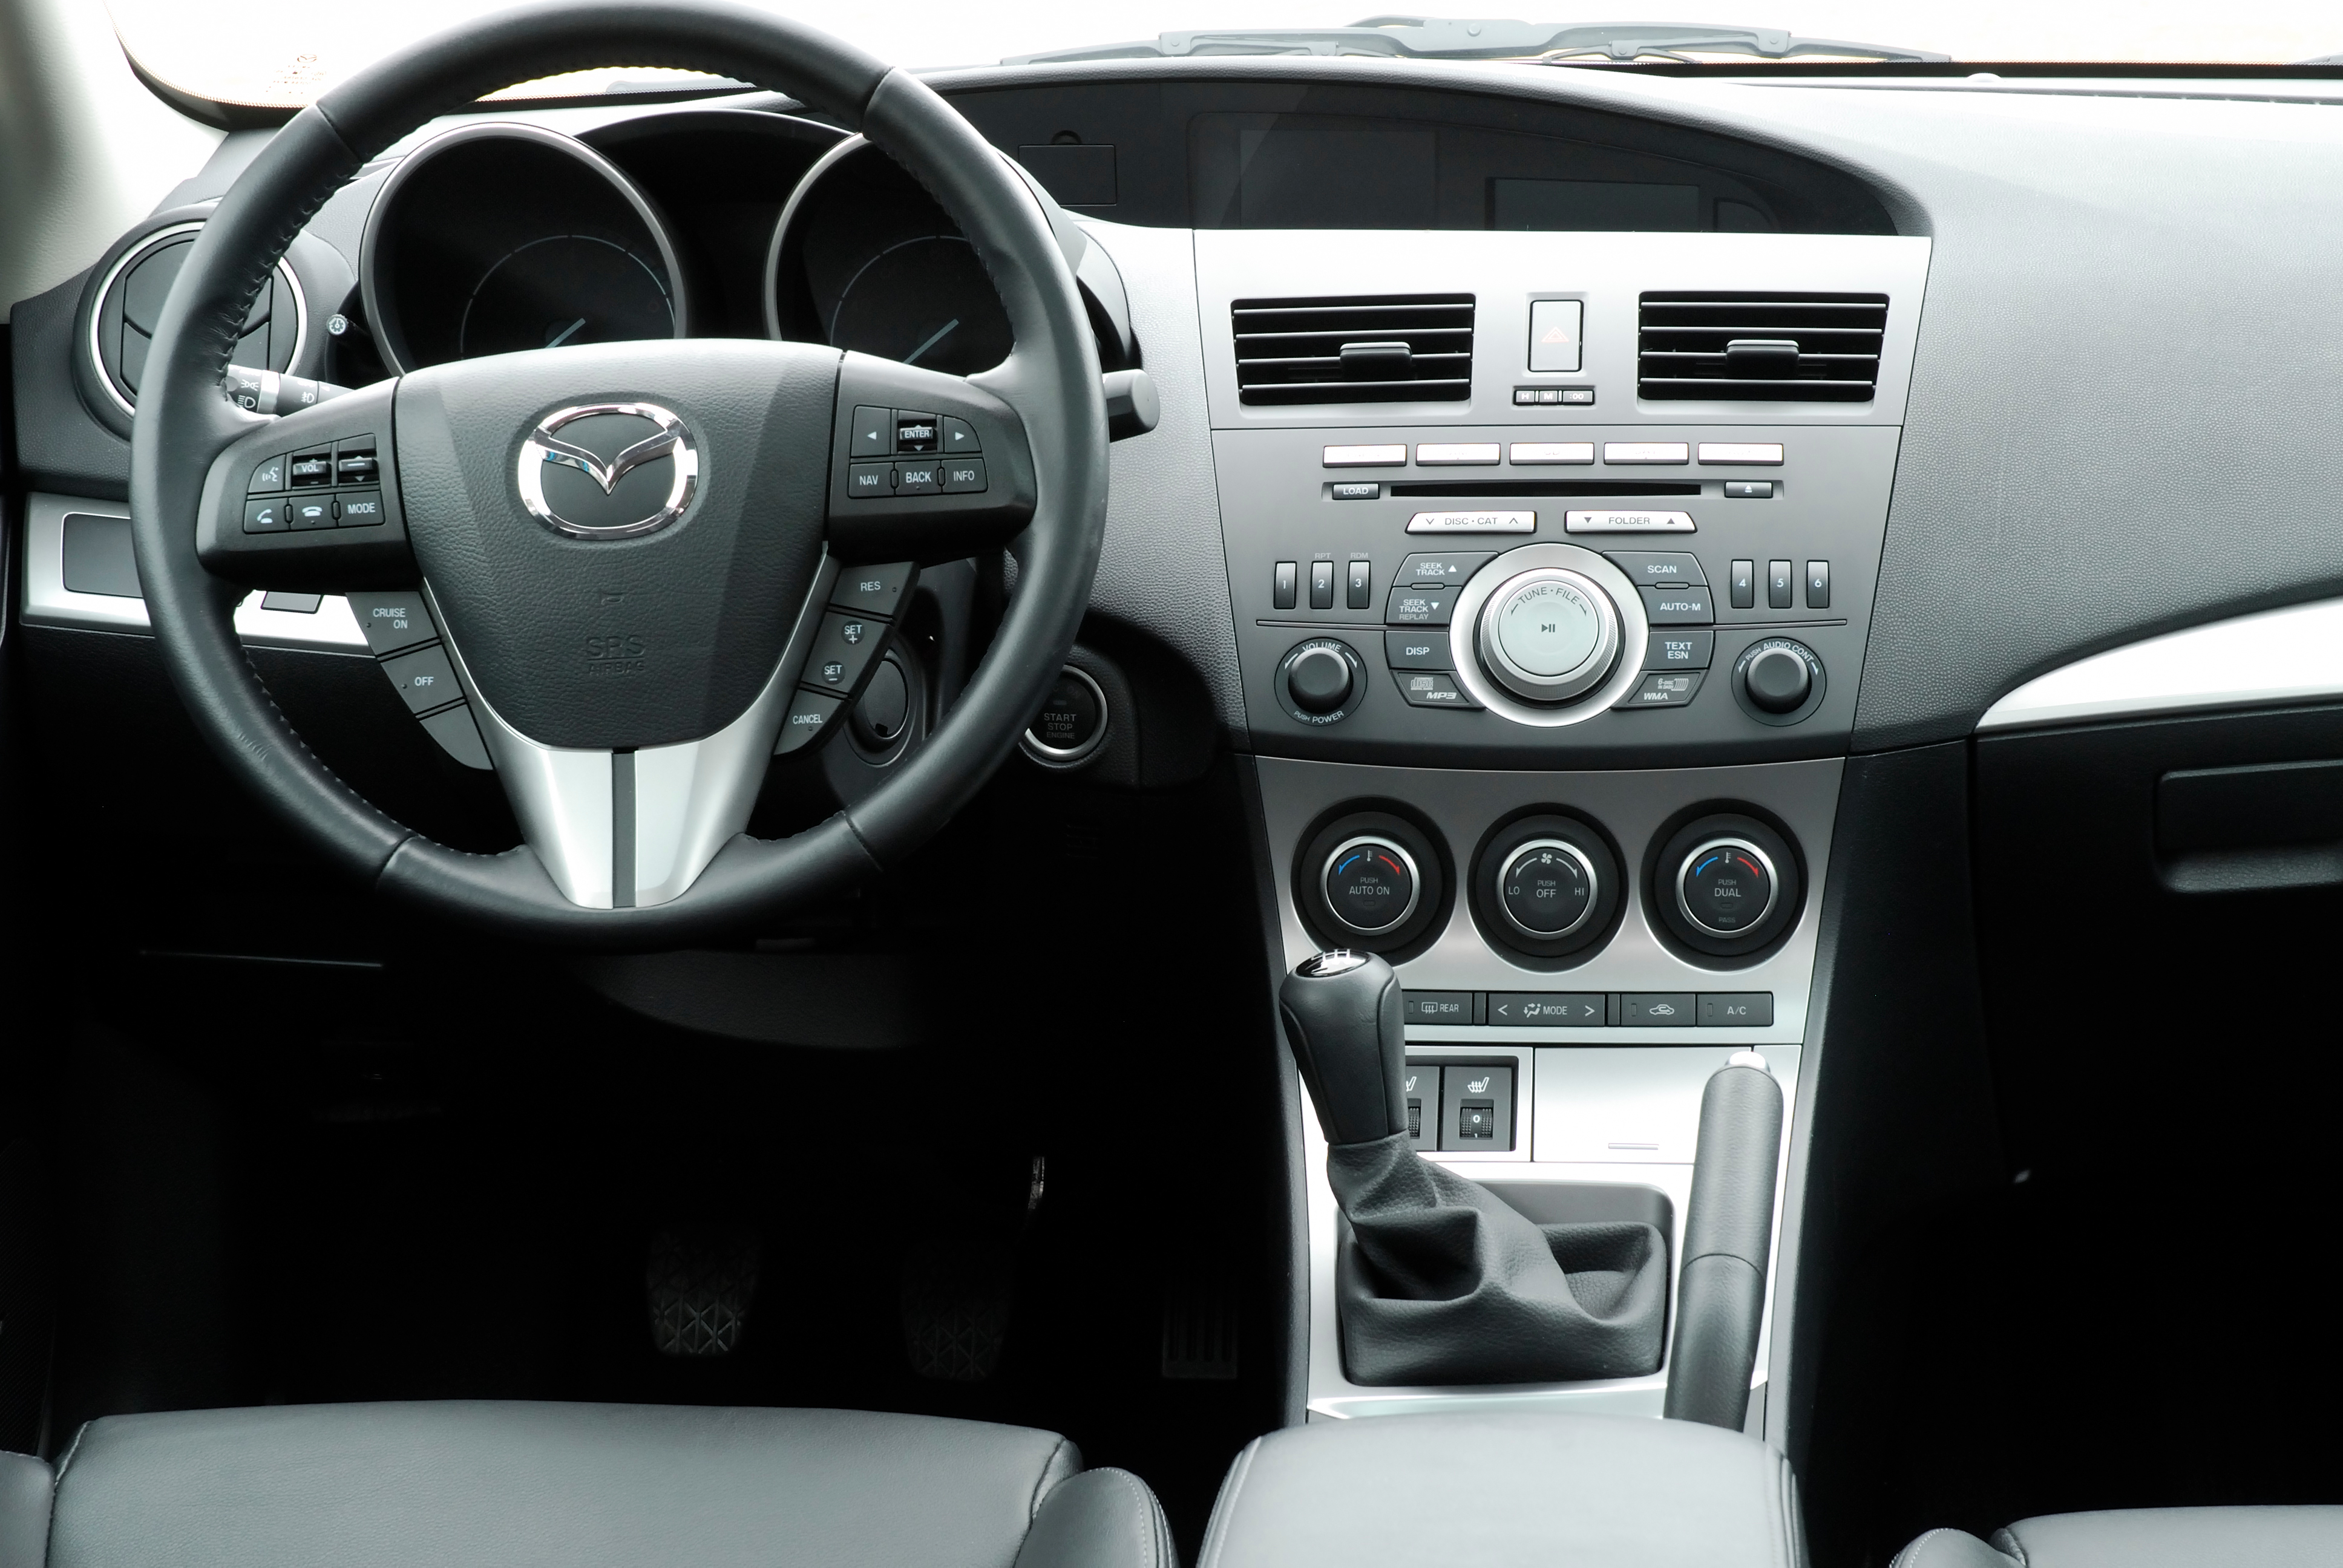 index of /wp-content/gallery/2009mazda3